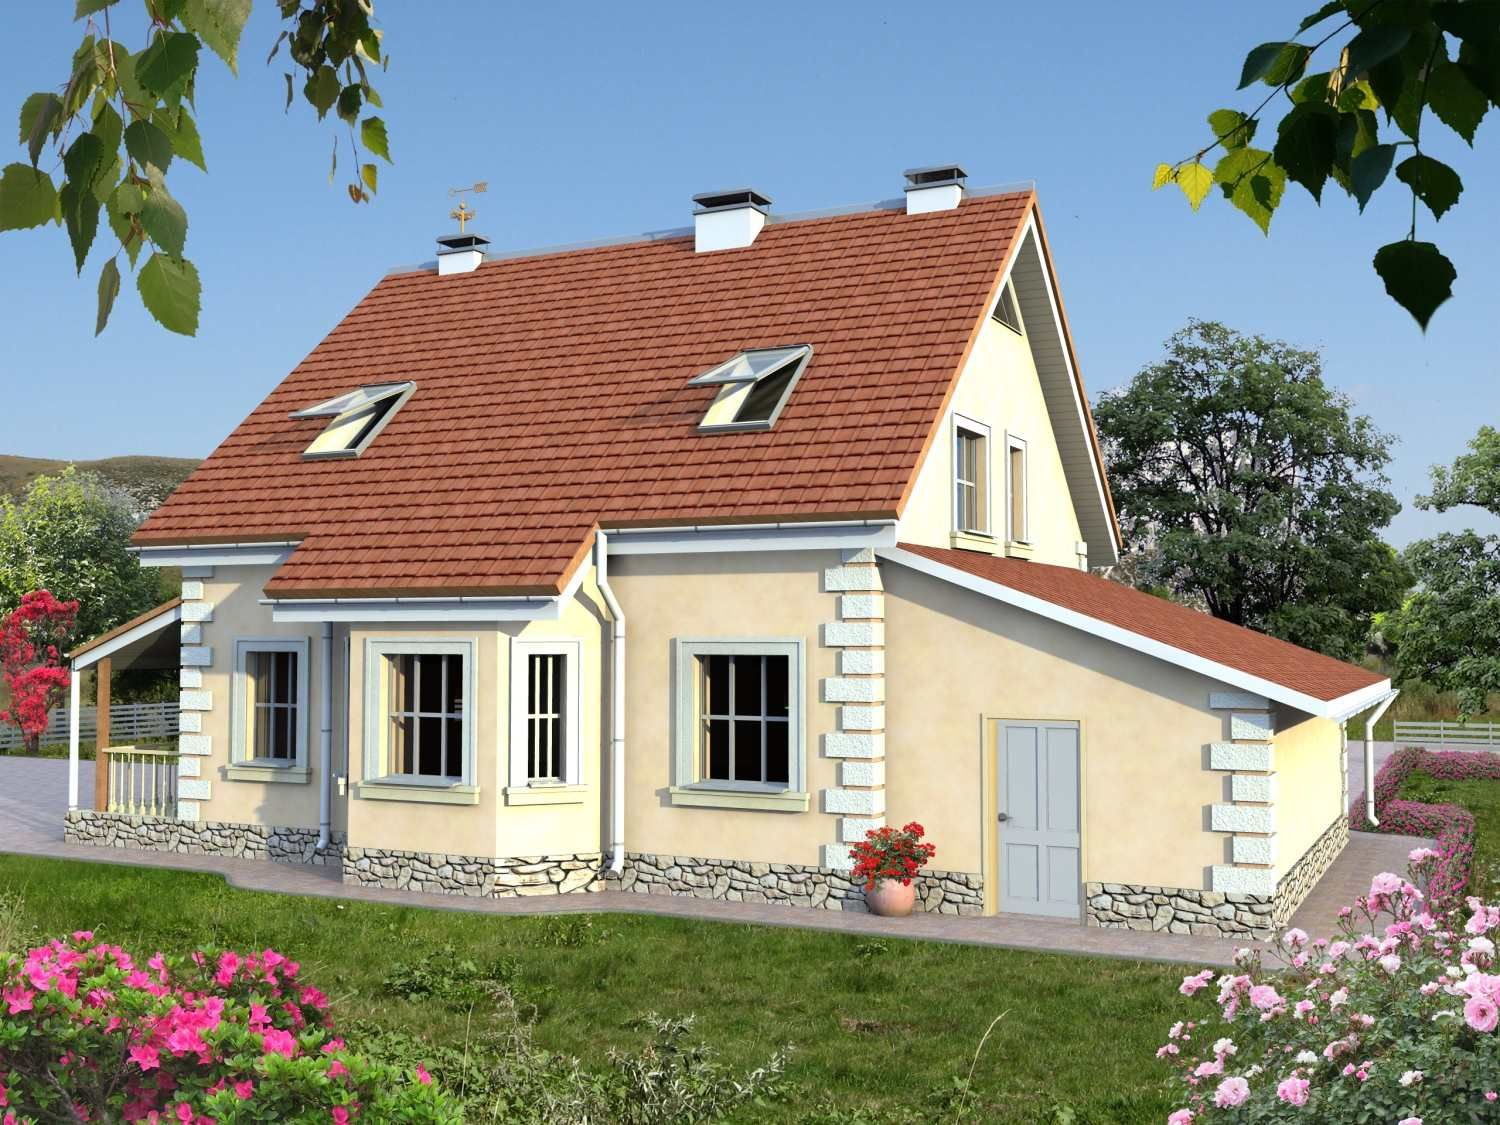 House plan u0027u0027ZABIREu0027u0027 162 sqm From the